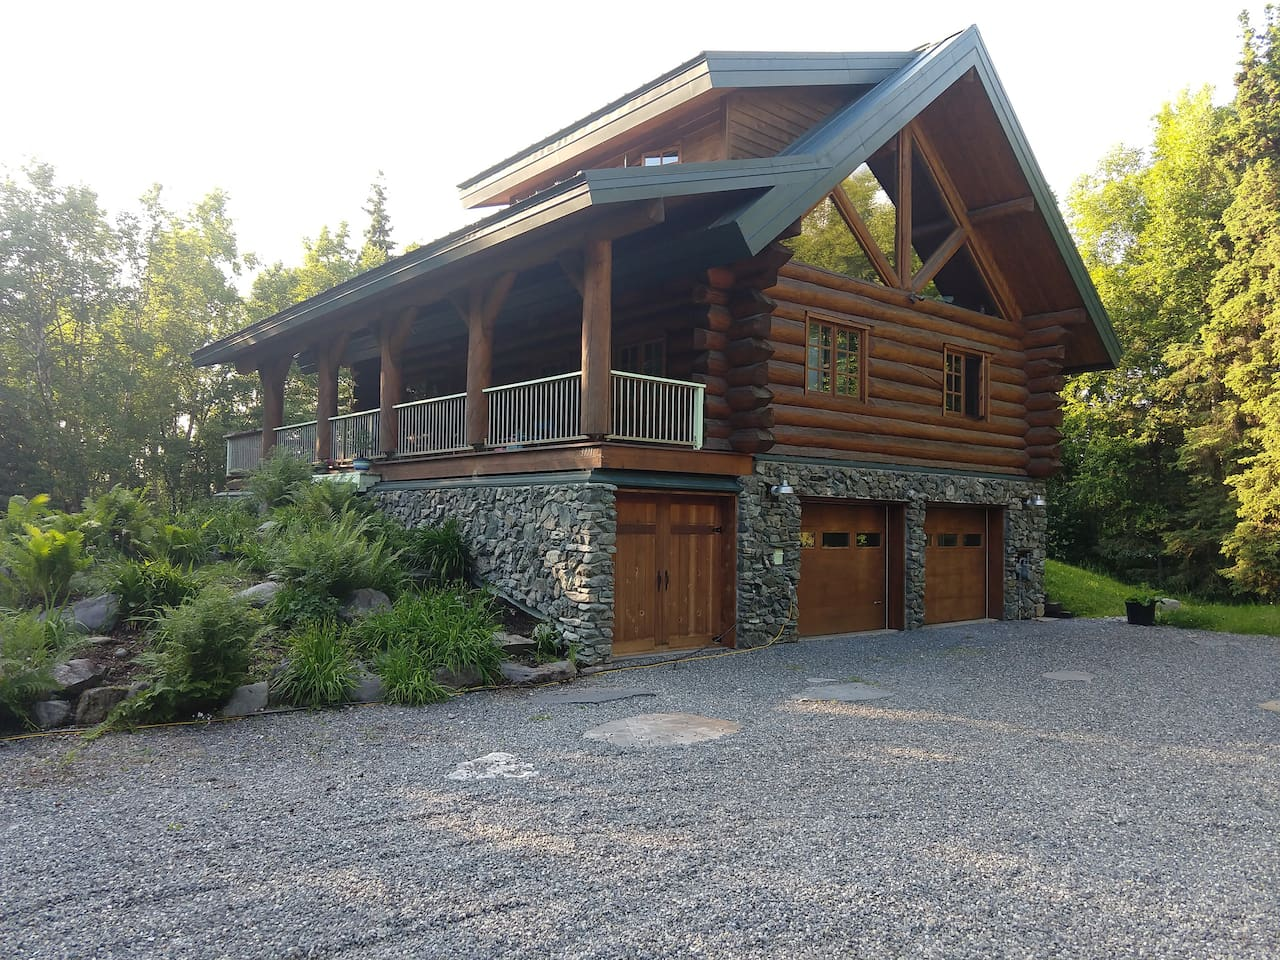 Log house in the woods